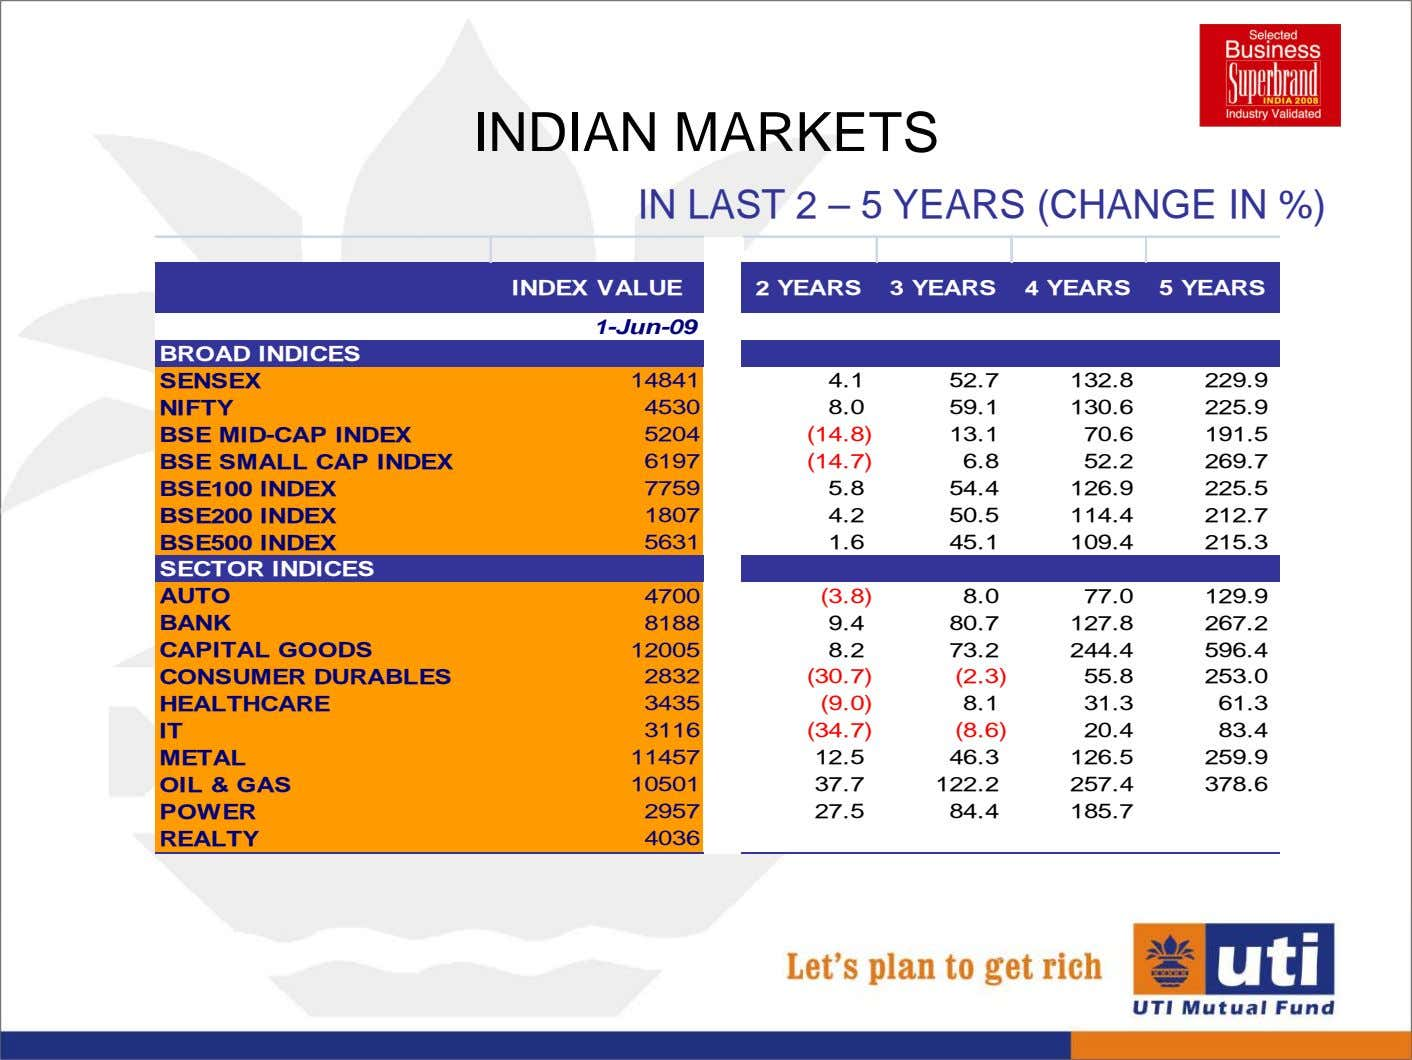 INDIAN MARKETS IN LAST 2 – 5 YEARS (CHANGE IN %) INDEX VALUE 2 YEARS